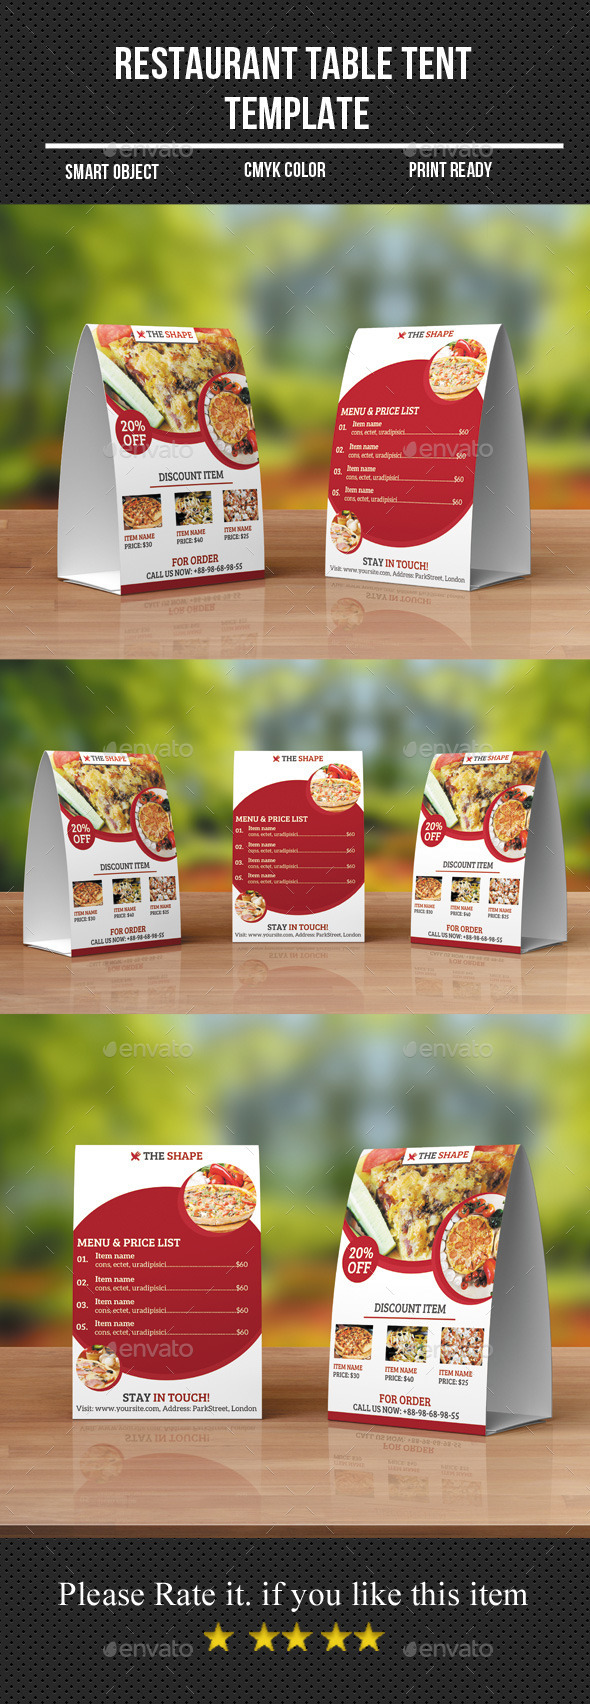 Restaurant Table Tent Template - Food Menus Print Templates